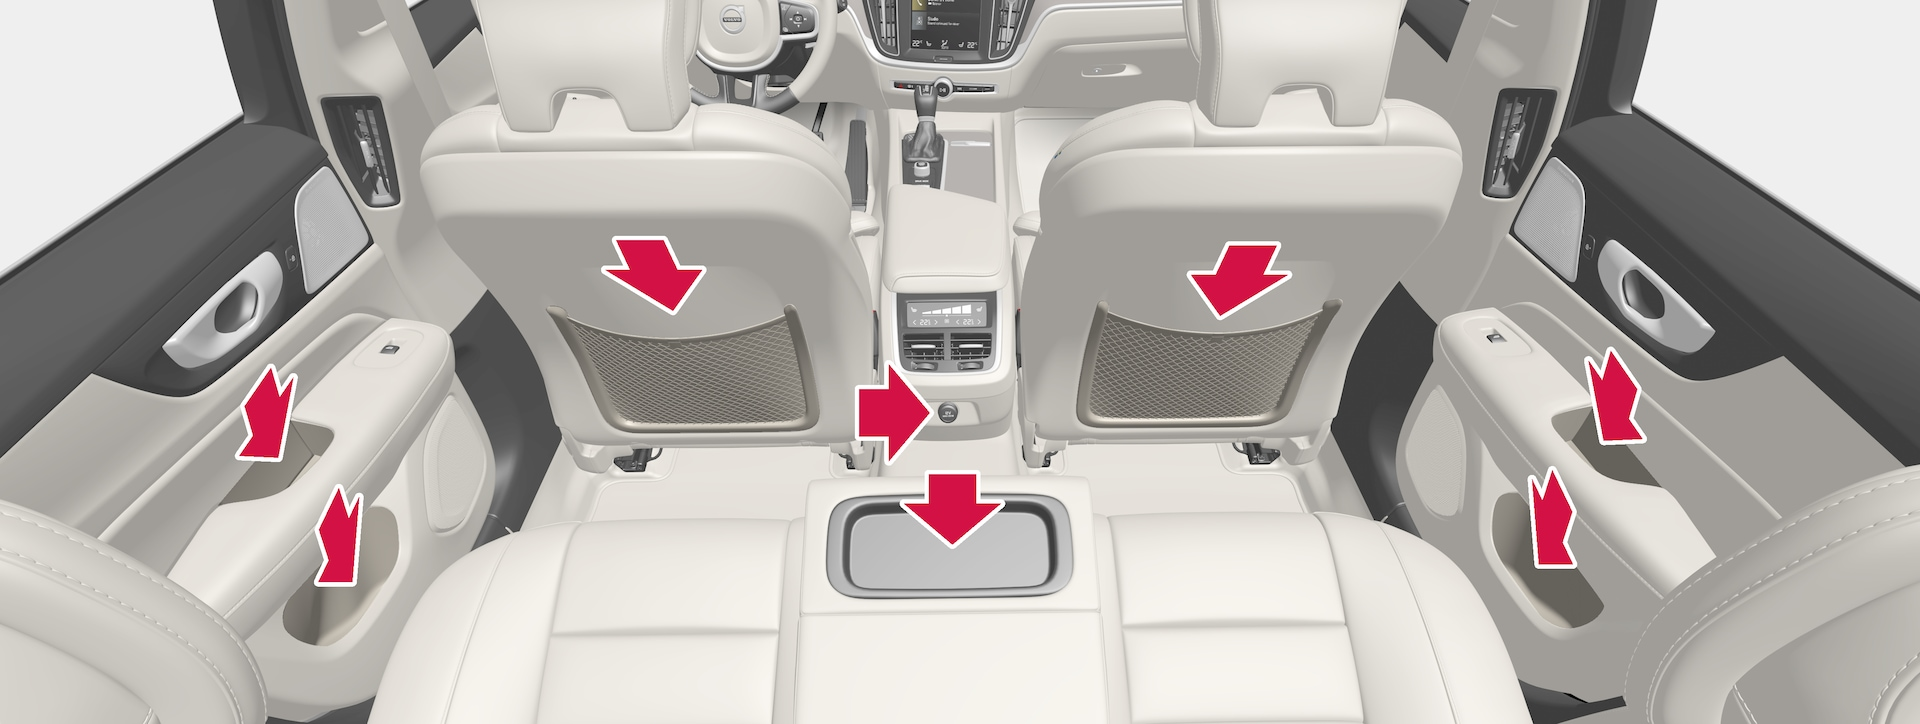 P5-1817-S/V60-Interior storage, back seat